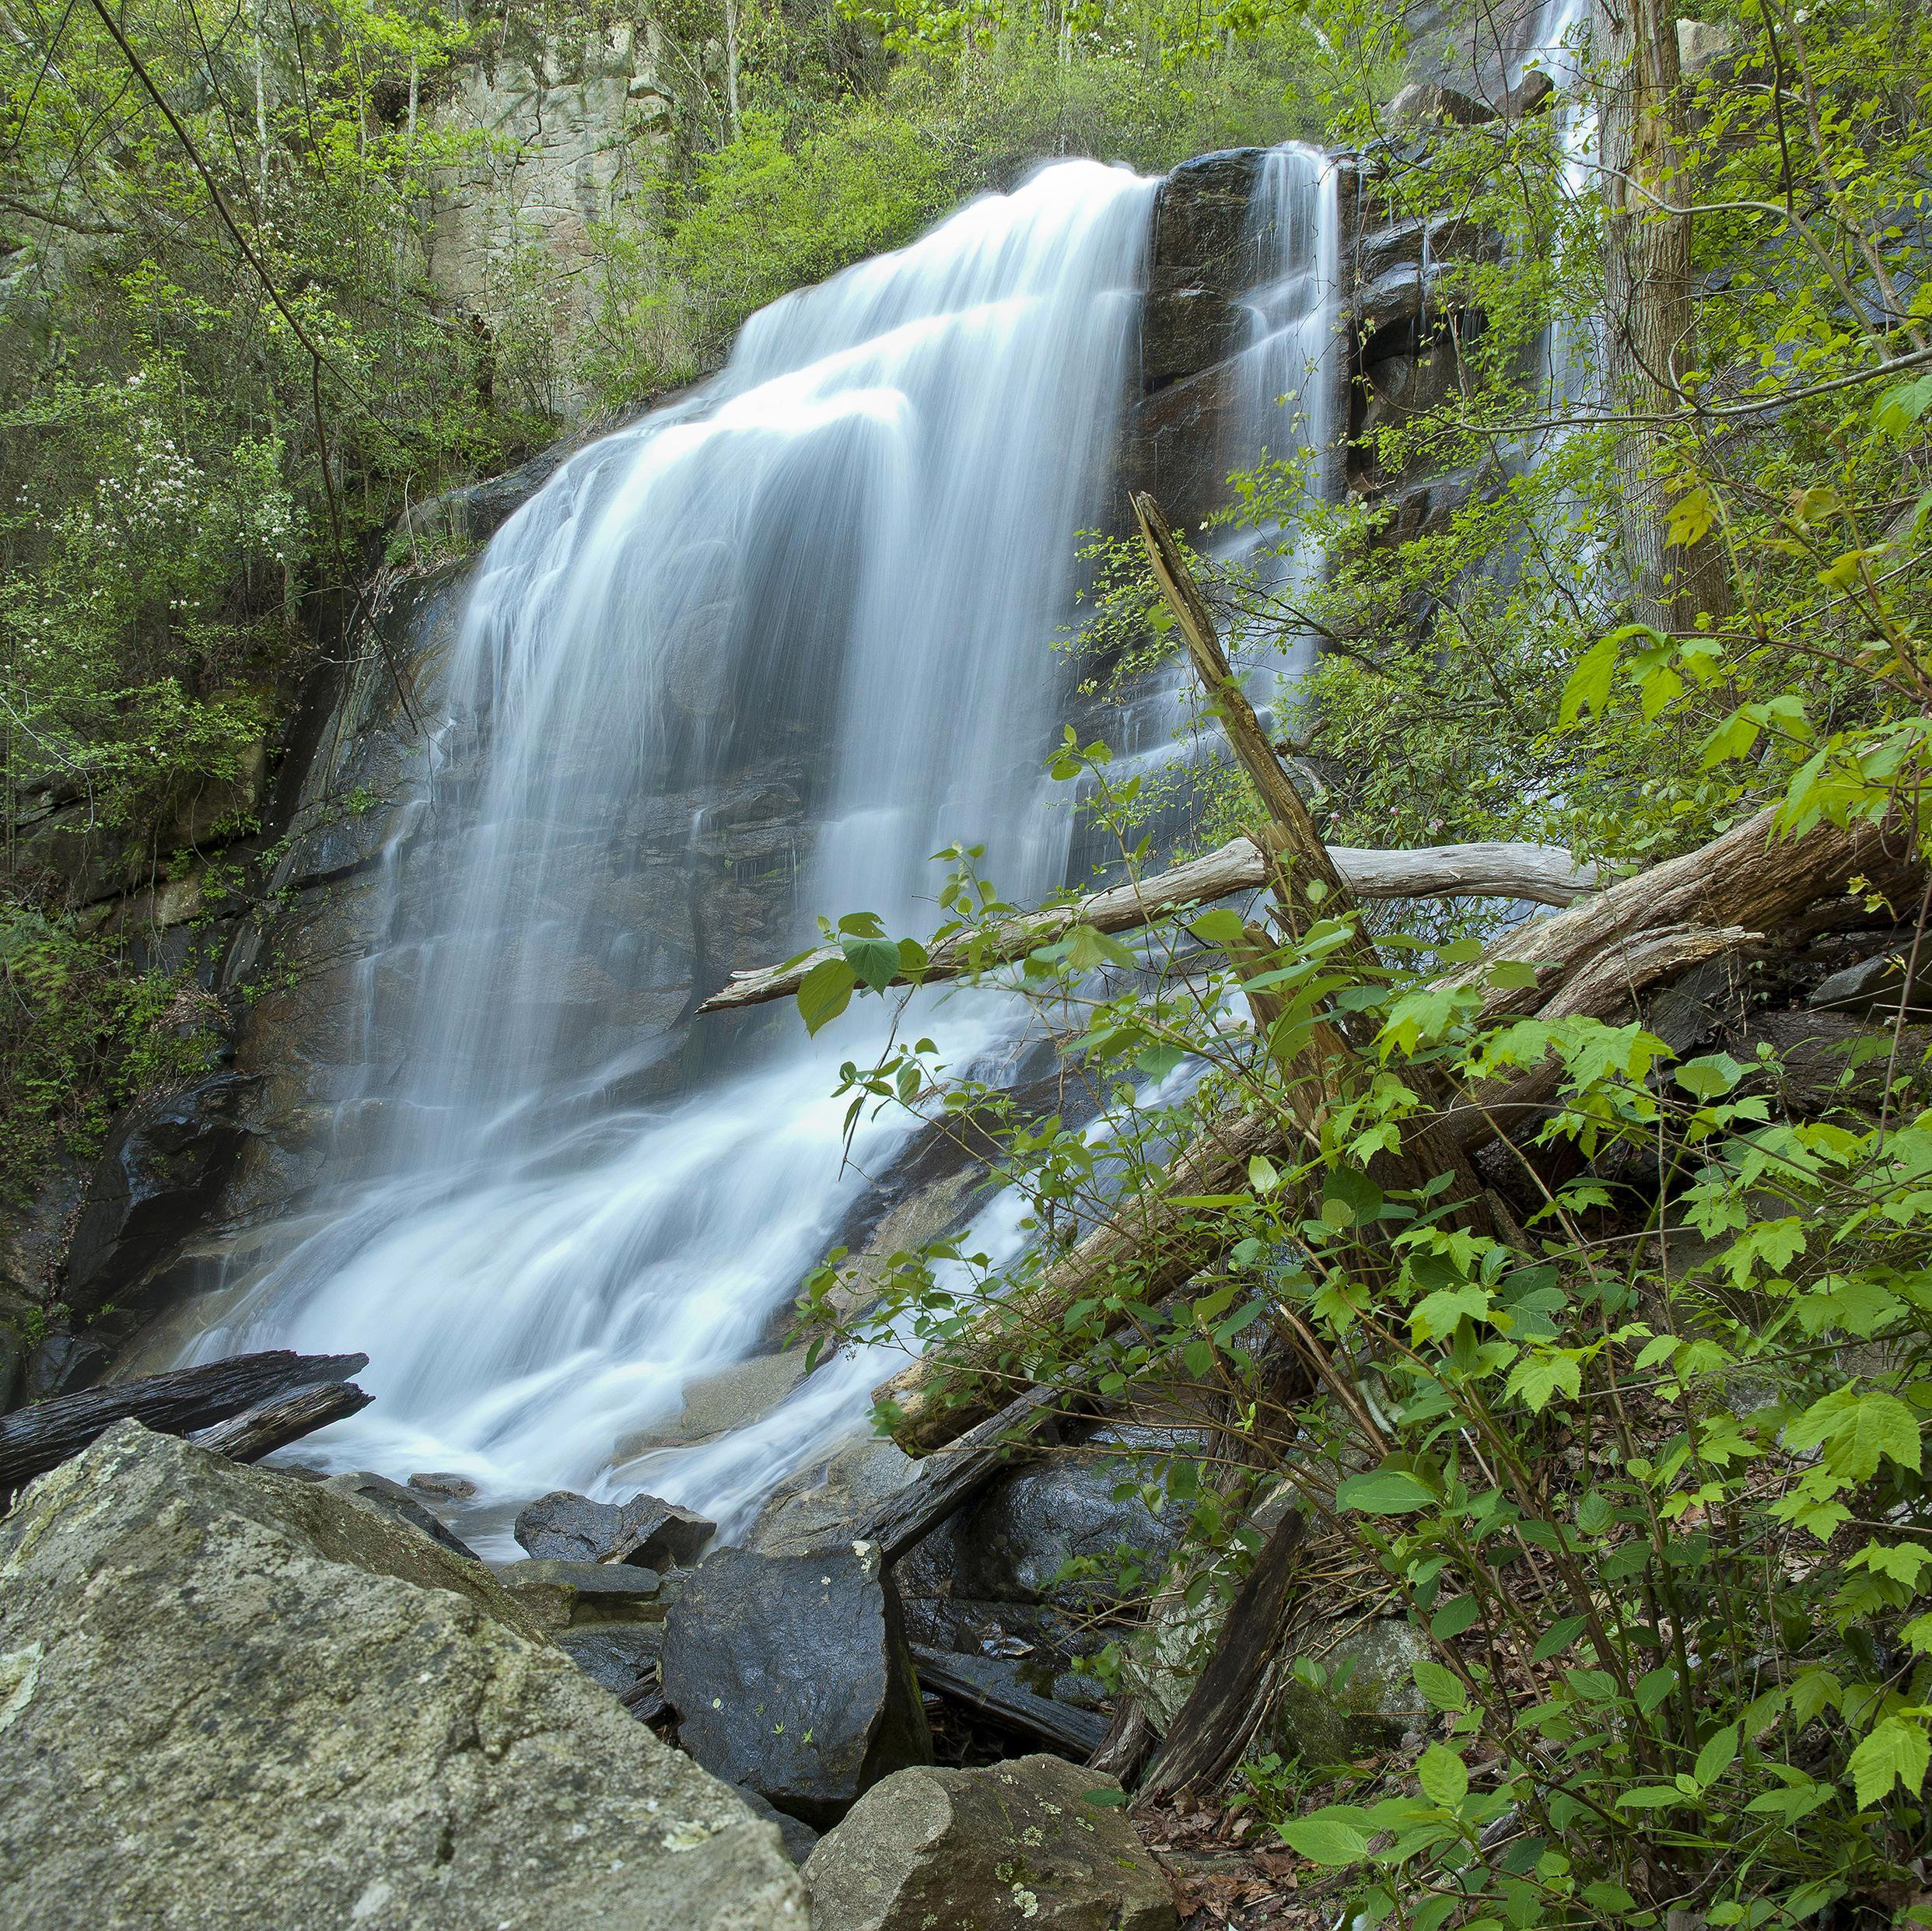 Slide 41 of 52:  Where: Jones Gap State Park Distance: 3.4 miles out and back Must see: This short and sweet hike offers breathtaking views of a 125-foot waterfall that is sure to be unlike anything you've seen before.